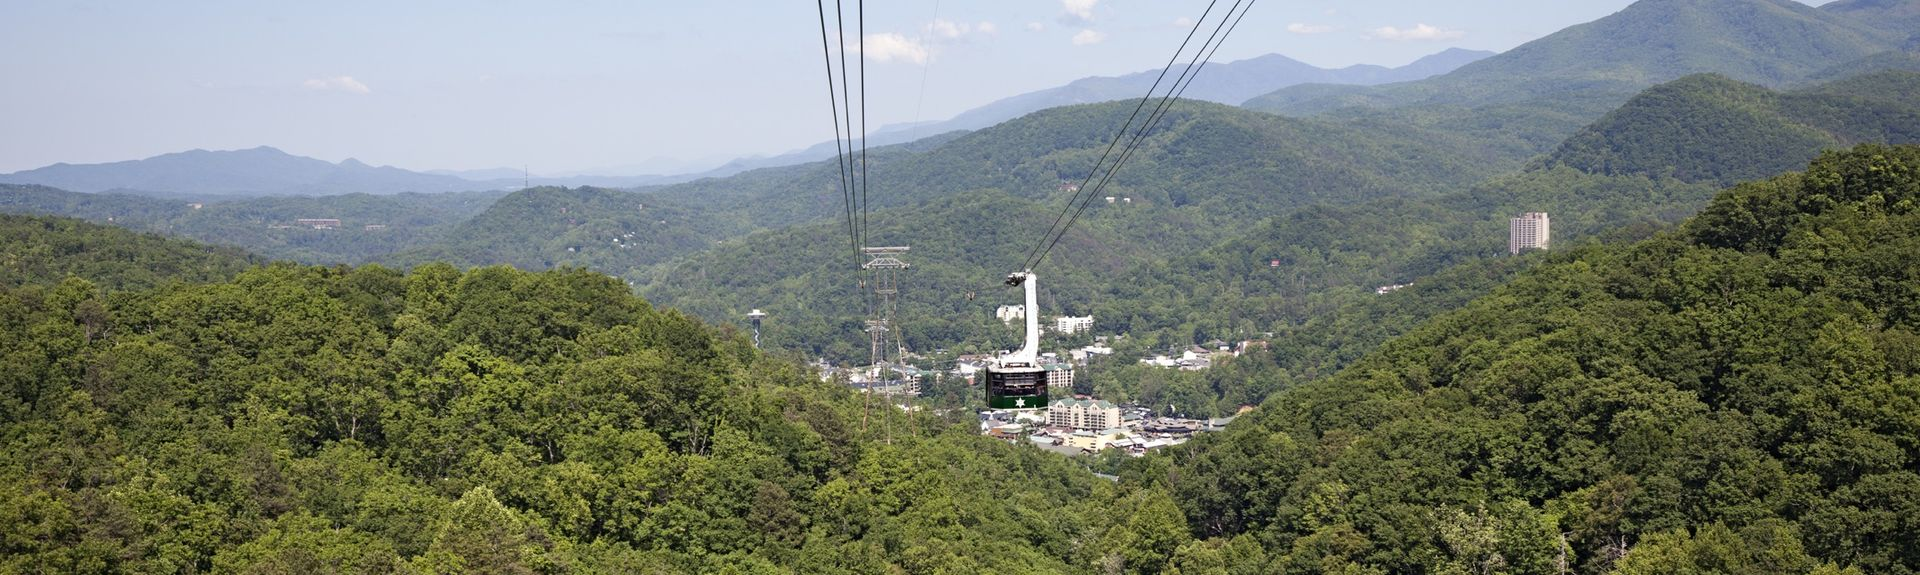 Ober Gatlinburg Ski Resort & Amusement Park, Gatlinburg, TN, USA